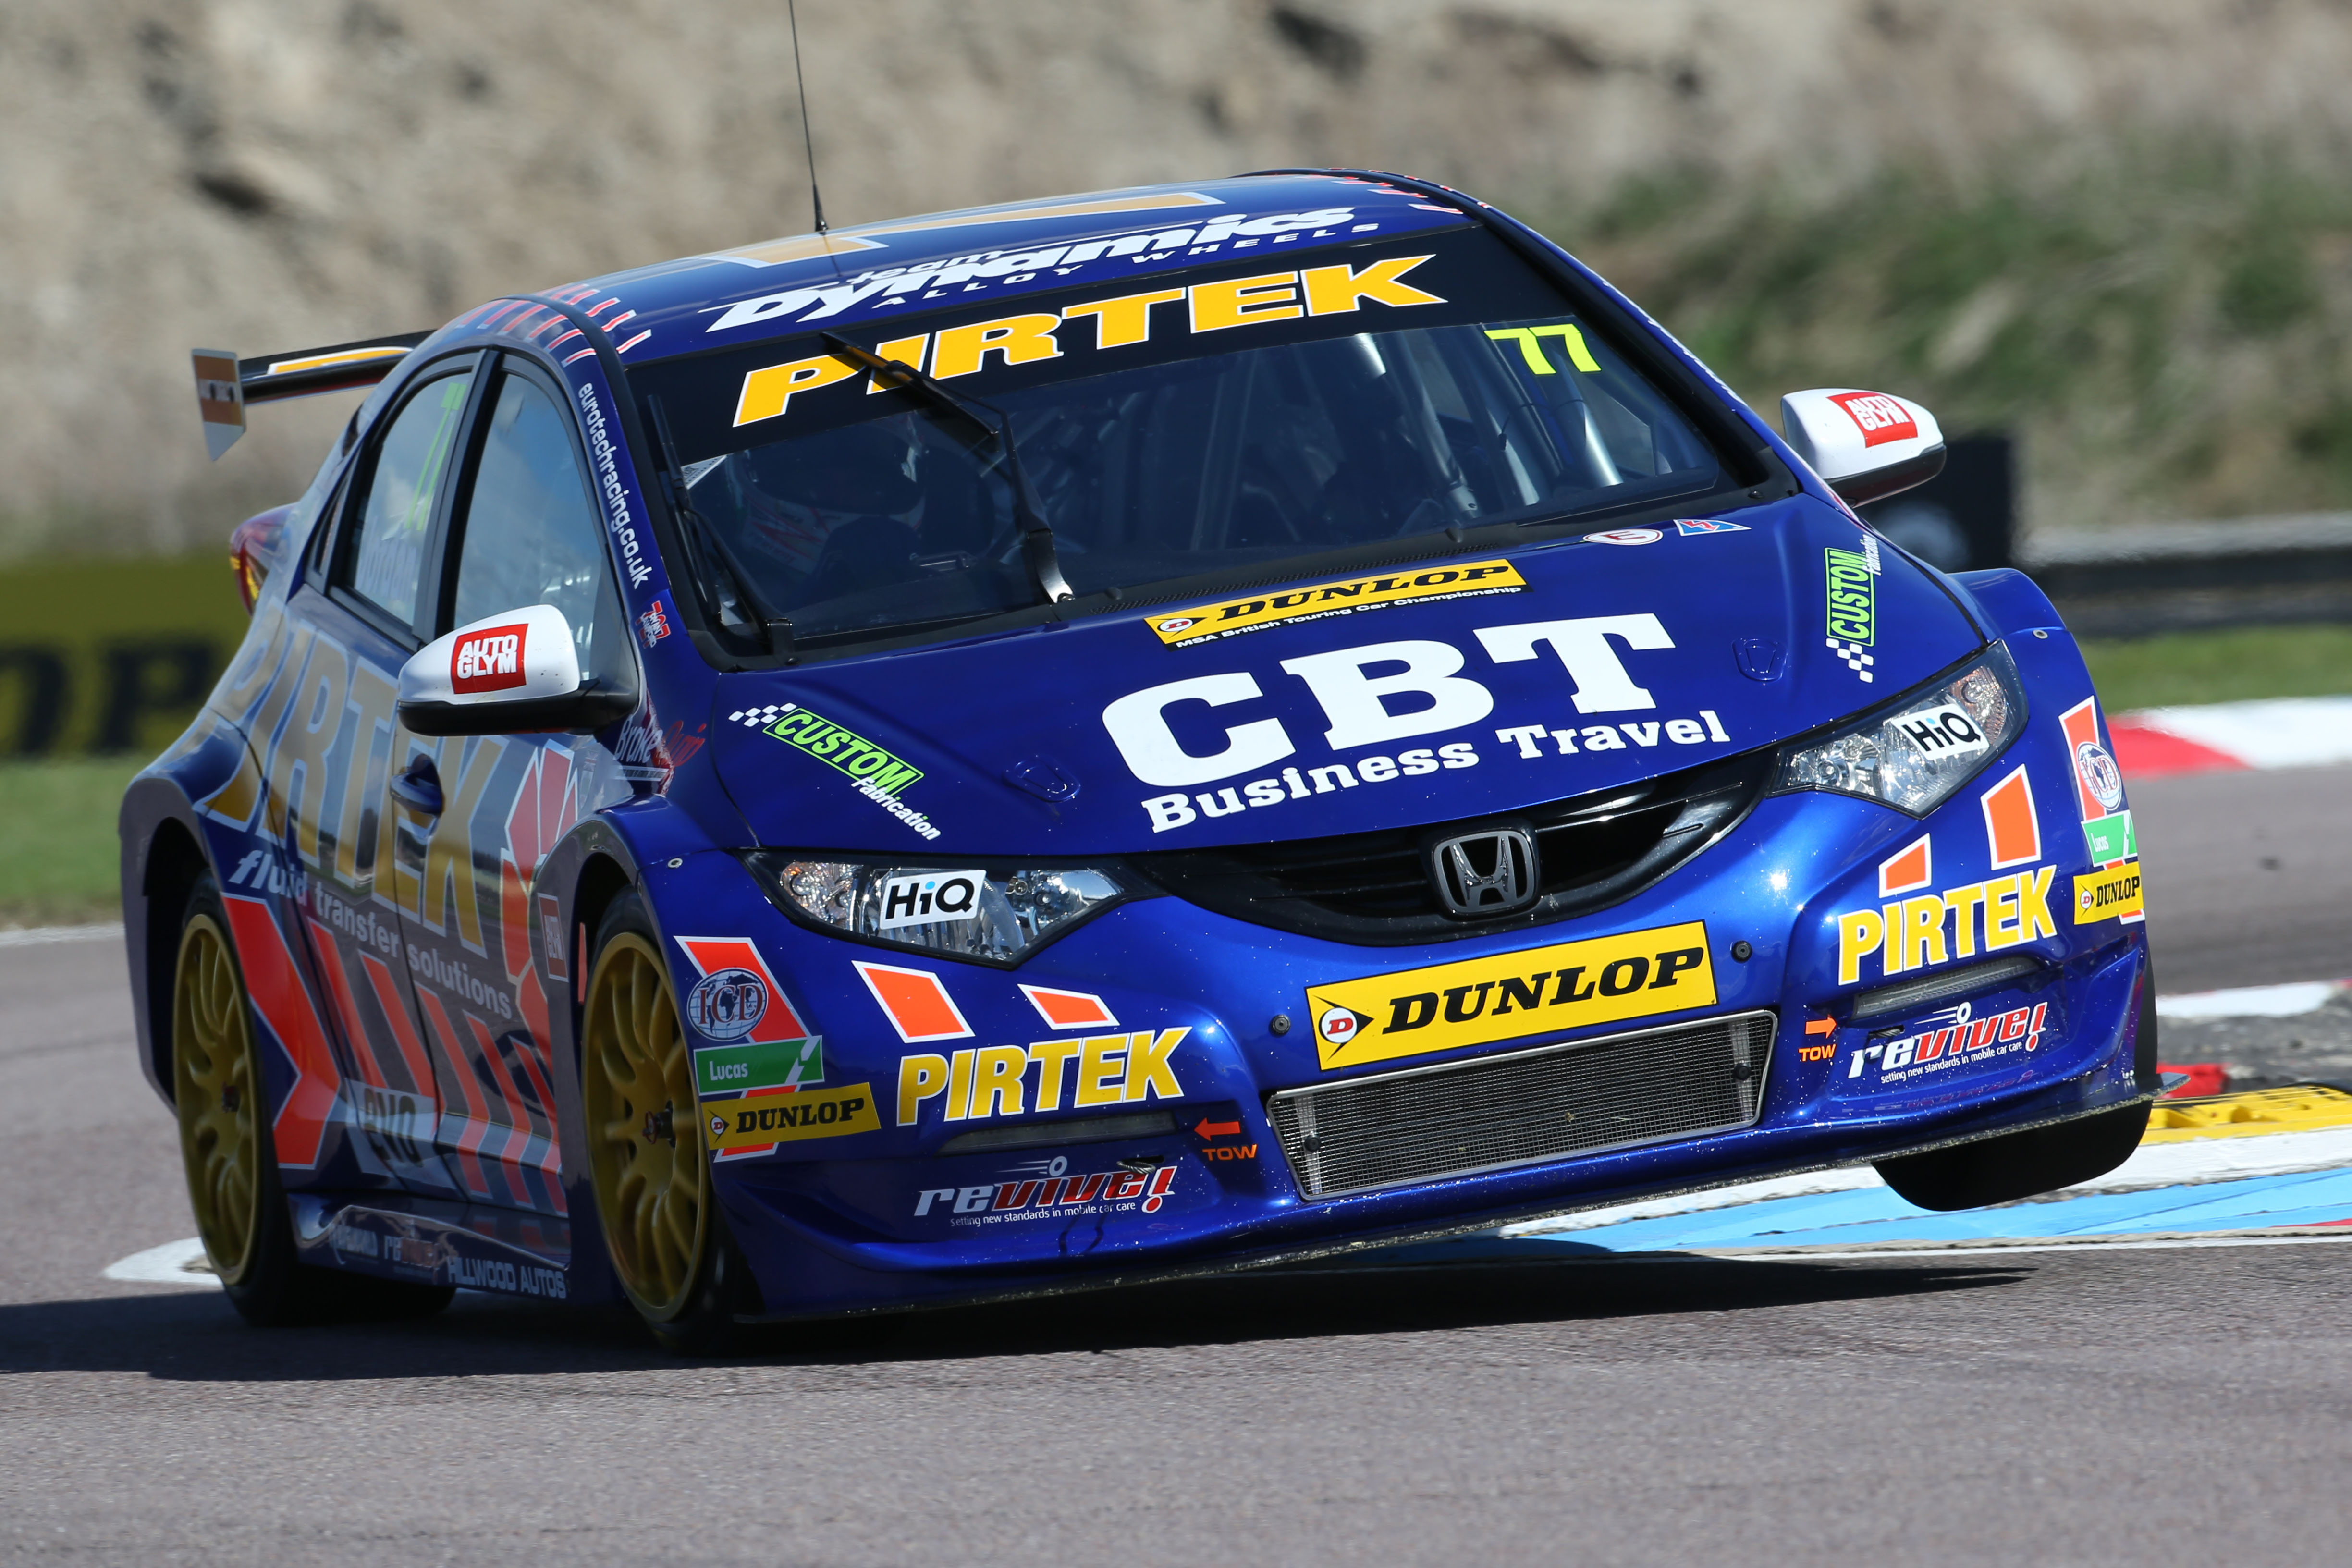 Andrew Jordan attacks the kerbs on his way to pole position